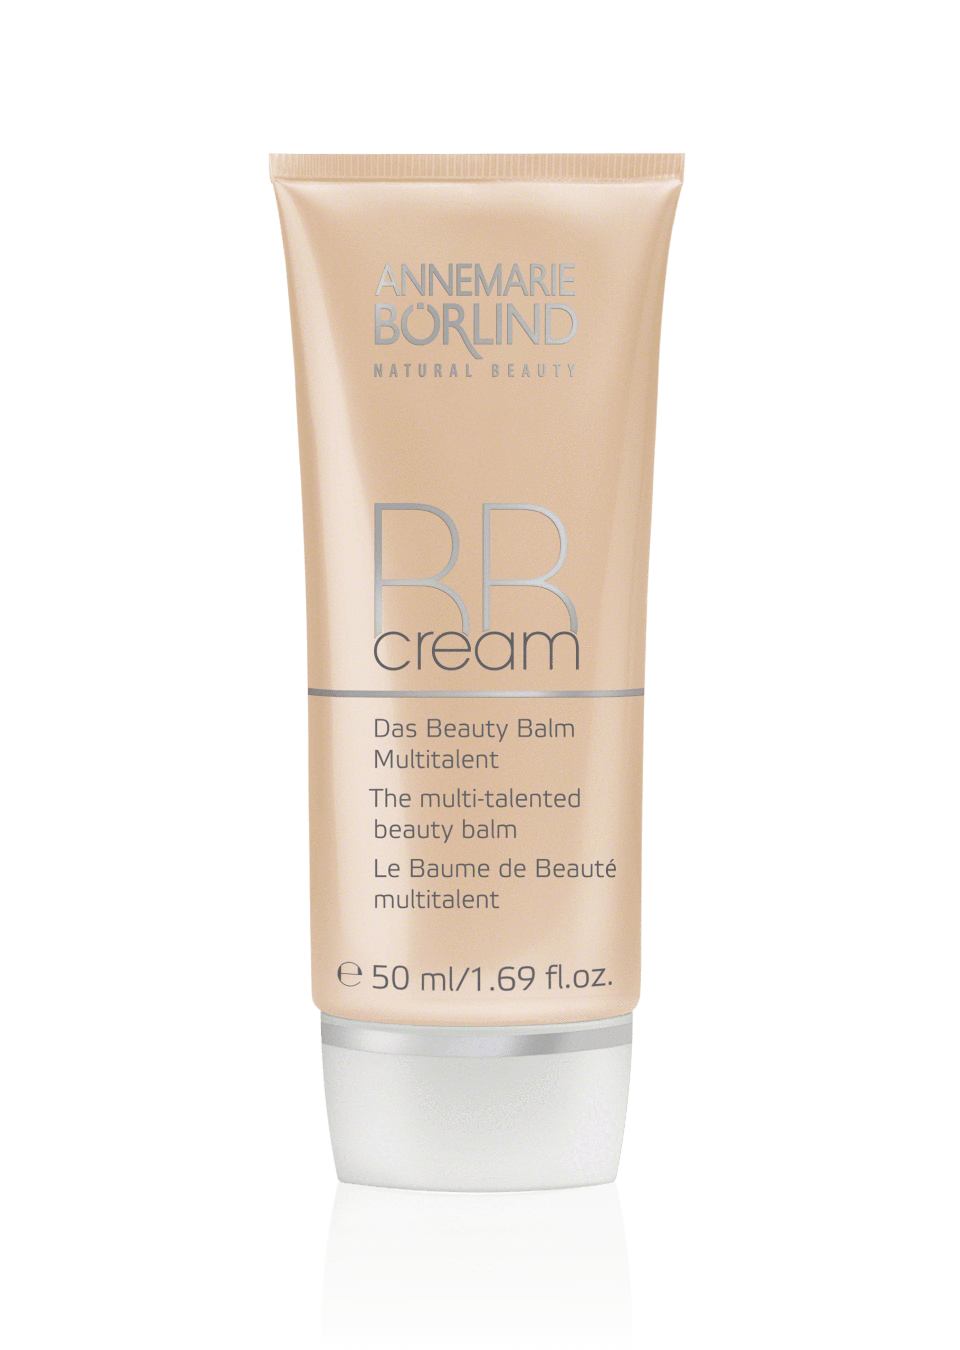 Personal Care - Annemarie Borlind BB Cream - Almond, 50mL